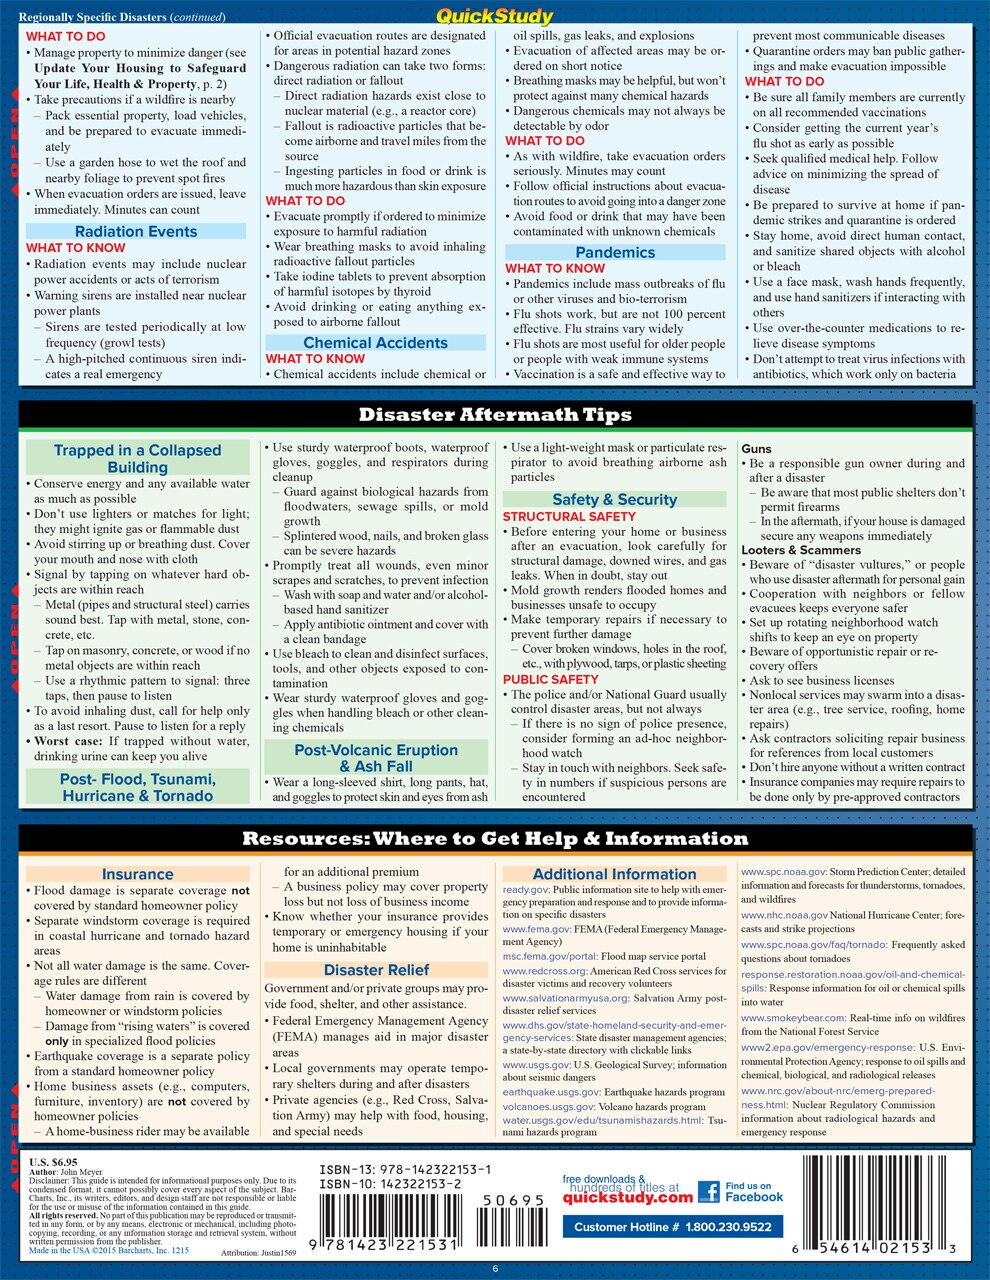 Quick Study QuickStudy Disaster Preparedness Laminated Reference Guide BarCharts Publishing Prevention Education Guide Back Image